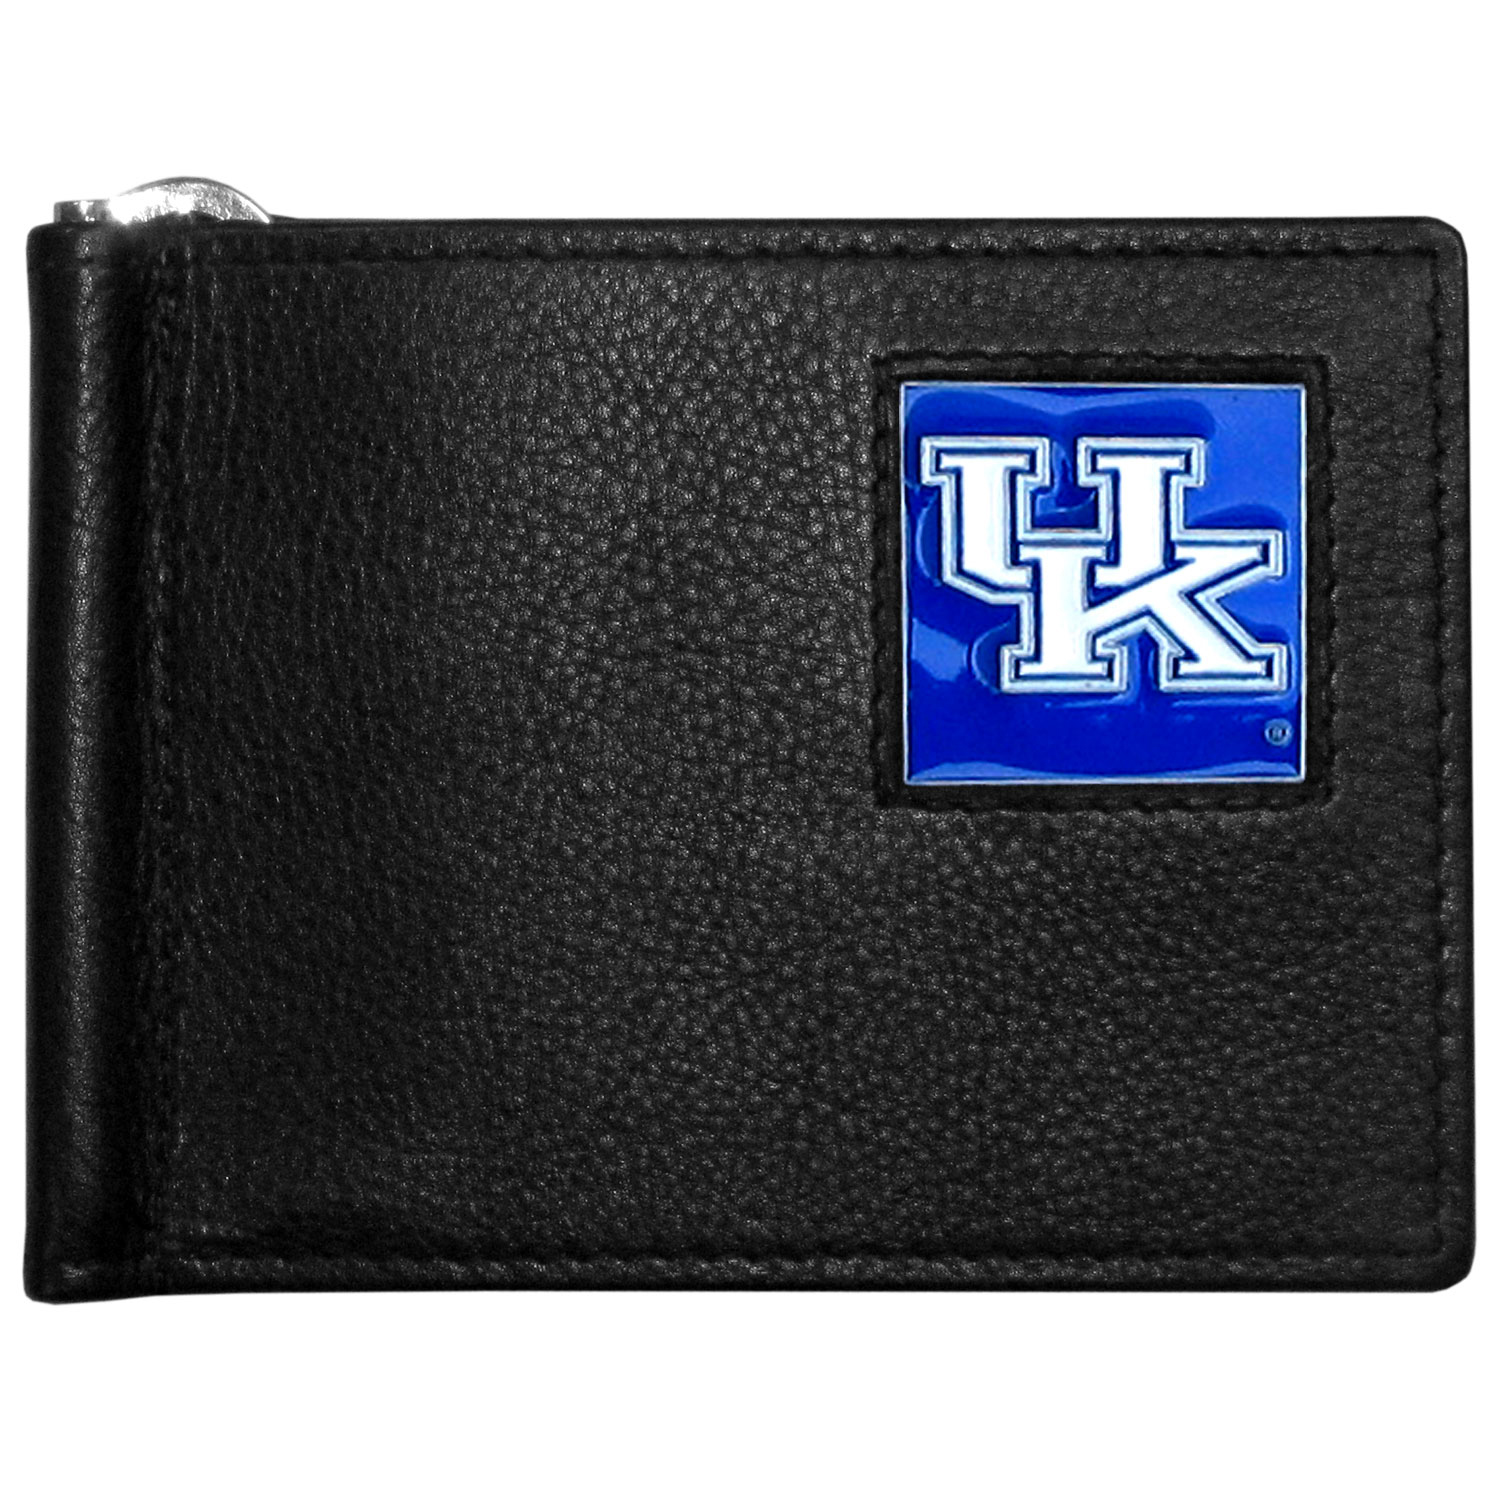 Kentucky Wildcats Leather Bill Clip Wallet - This cool new style wallet features an inner, metal bill clip that lips up for easy access. The super slim wallet holds tons of stuff with ample pockets, credit card slots & windowed ID slot. The wallet is made of genuine fine grain leather and it finished with a metal Kentucky Wildcats emblem. The wallet is shipped in gift box packaging.